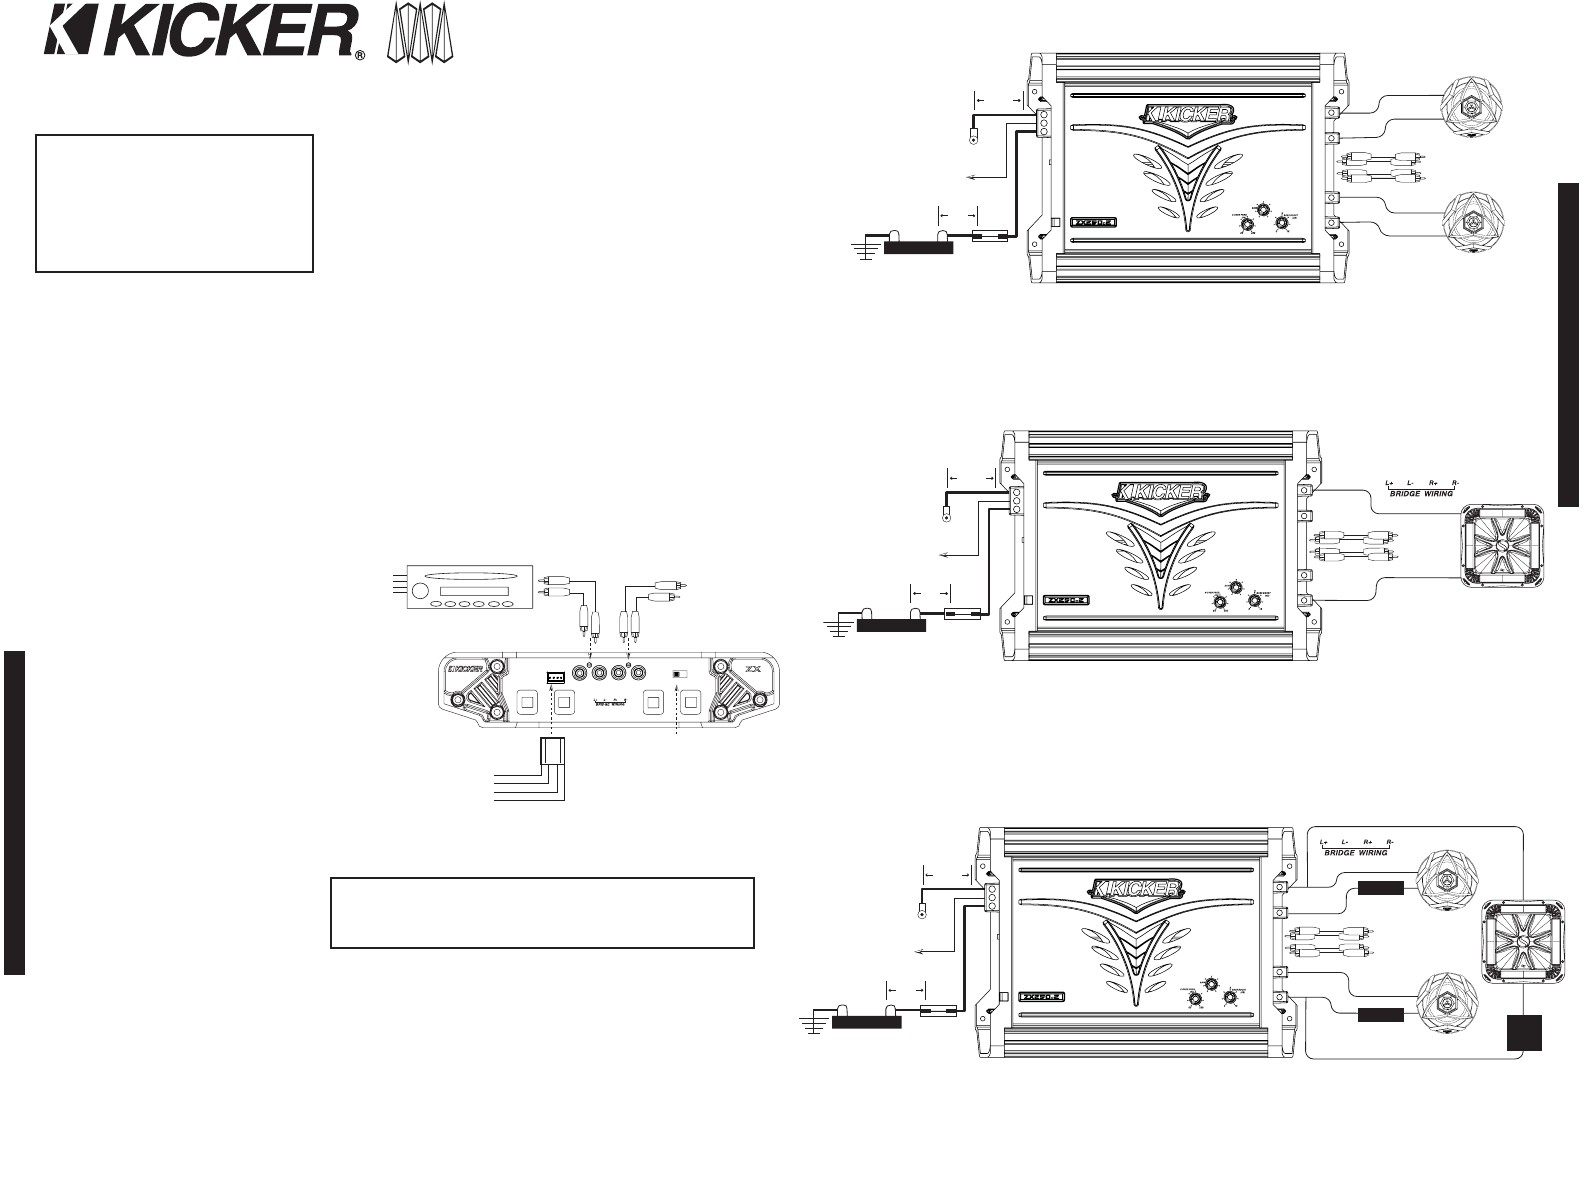 Subwoofer Wiring Diagrams Within Kicker Comp 12 Diagram In - Kicker Wiring Diagram